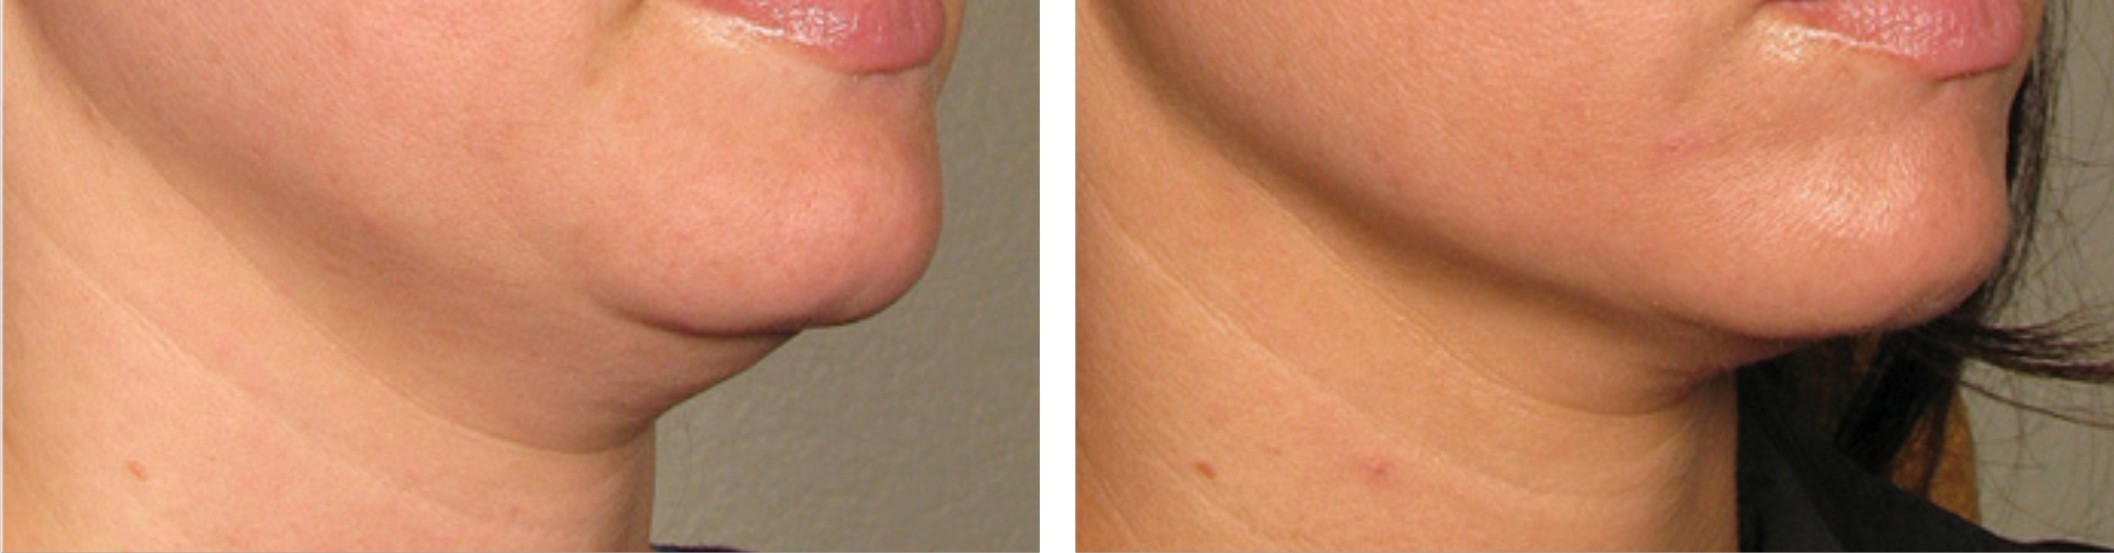 Radio Frequency Skin Tightening (RF) Image Three